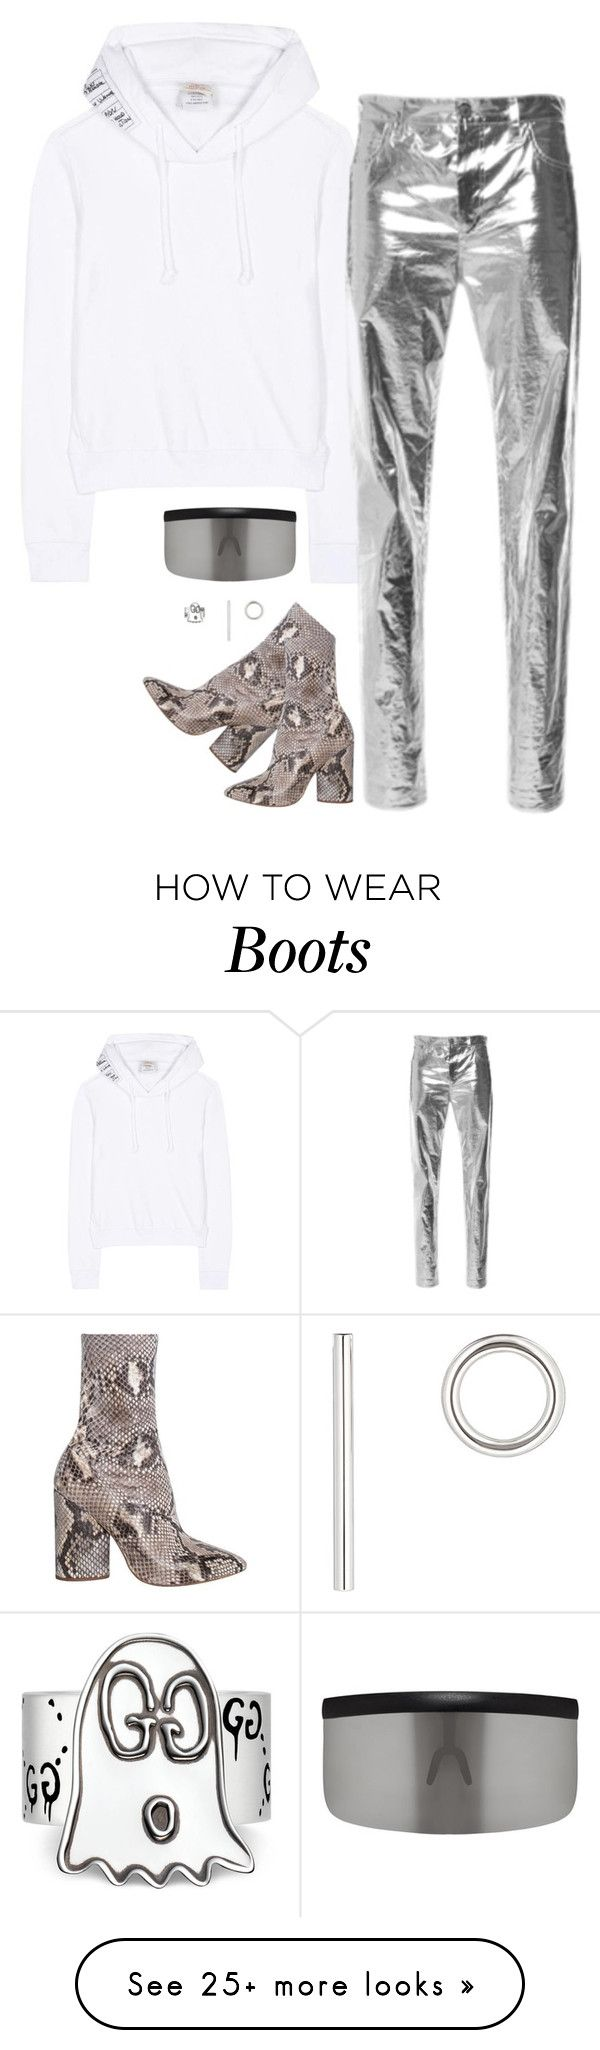 """""""Yeezy shoes and vêtement pull with isabel marant pant"""" by hugovrcl on Polyvore featuring Vetements, Isabel Marant, Mykita, Jennifer Fisher and Gucci"""